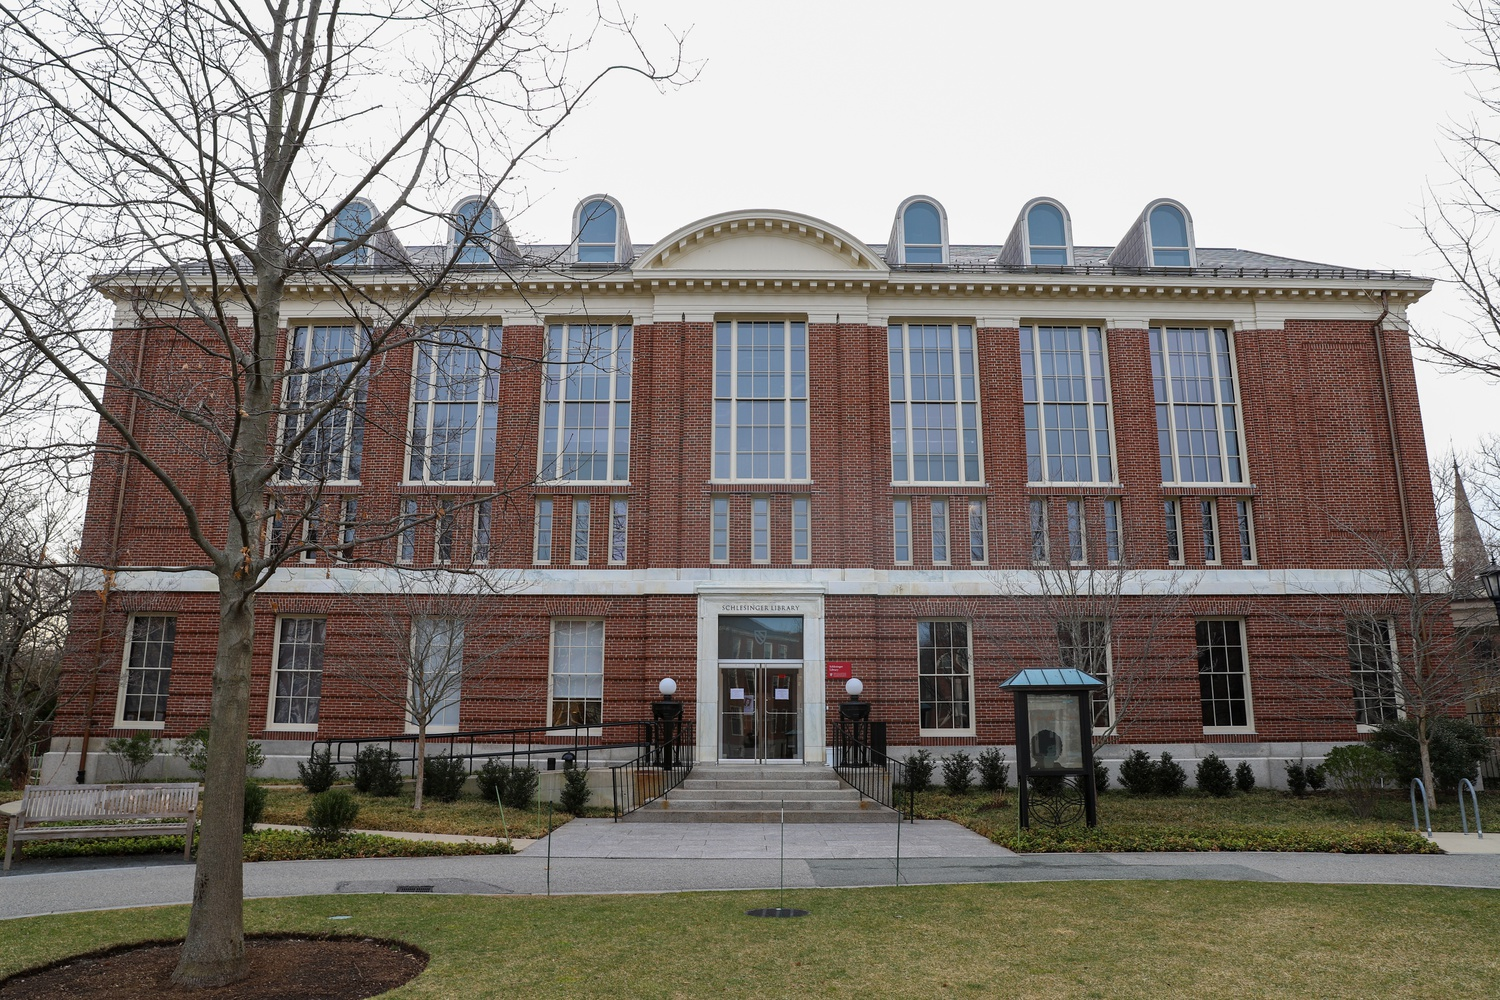 Harvard's Schlesinger Library, located in Radcliffe Yard, was set to receive historical materials from Philip Ahn Cuddy until he pulled his donation in protest.